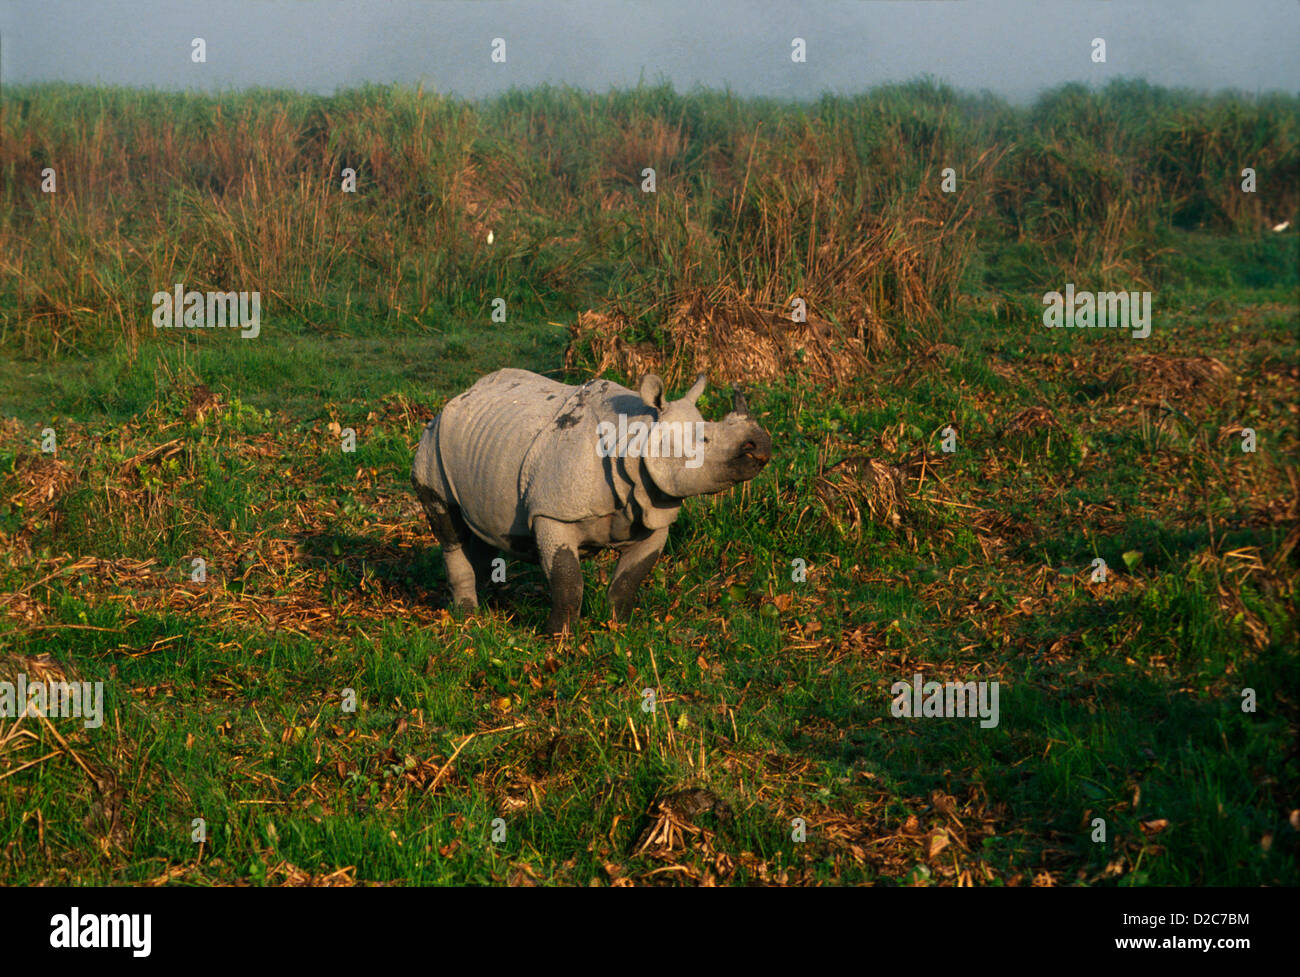 India, Assam, Kaziranga National Park. Endangered Indian Rhinoceros (Rhinoceros Unicornis). - Stock Image